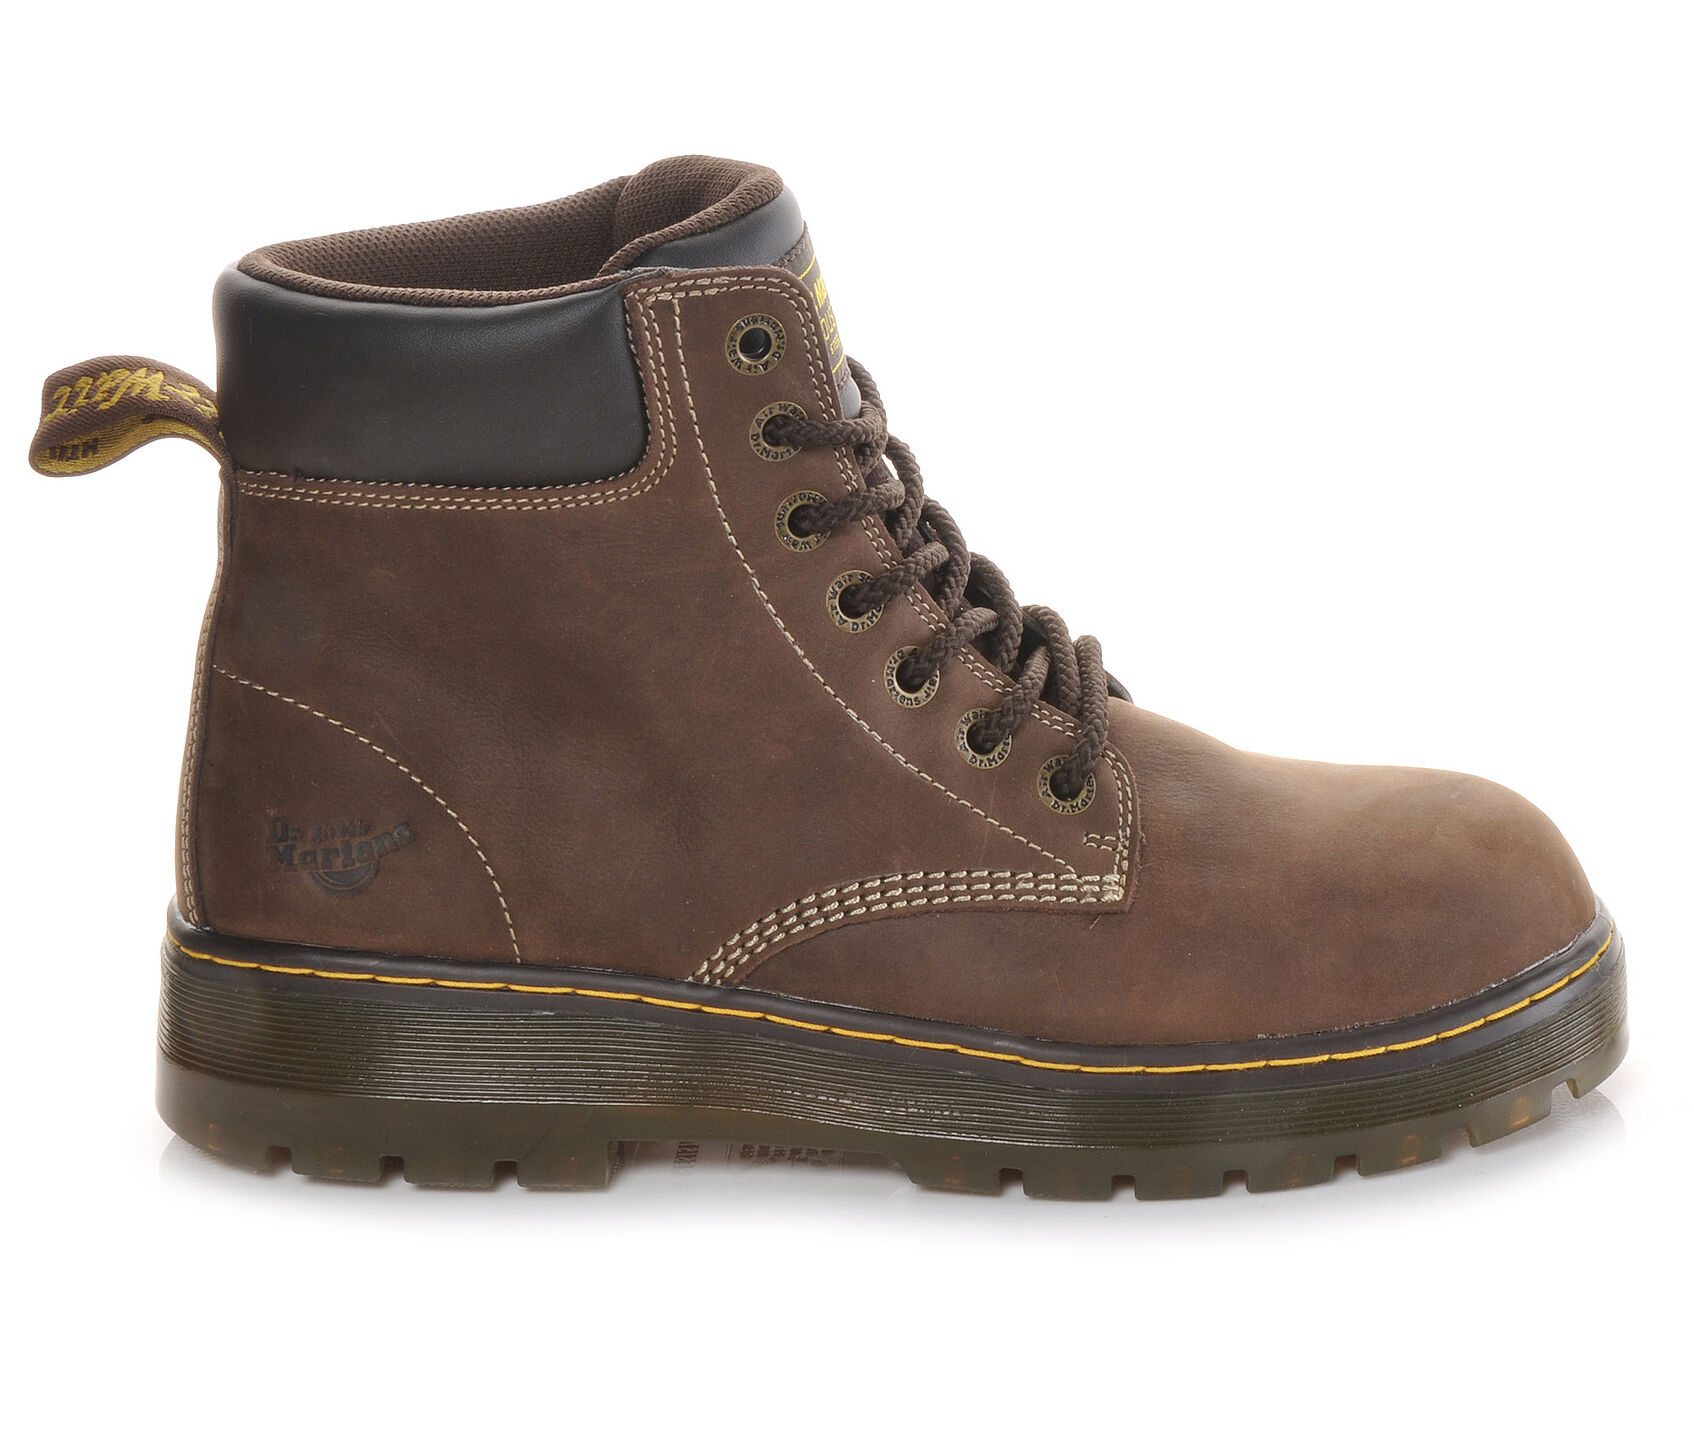 75df1d37a8e Men s Dr. Martens Industrial Winch Steel Toe Work Boots